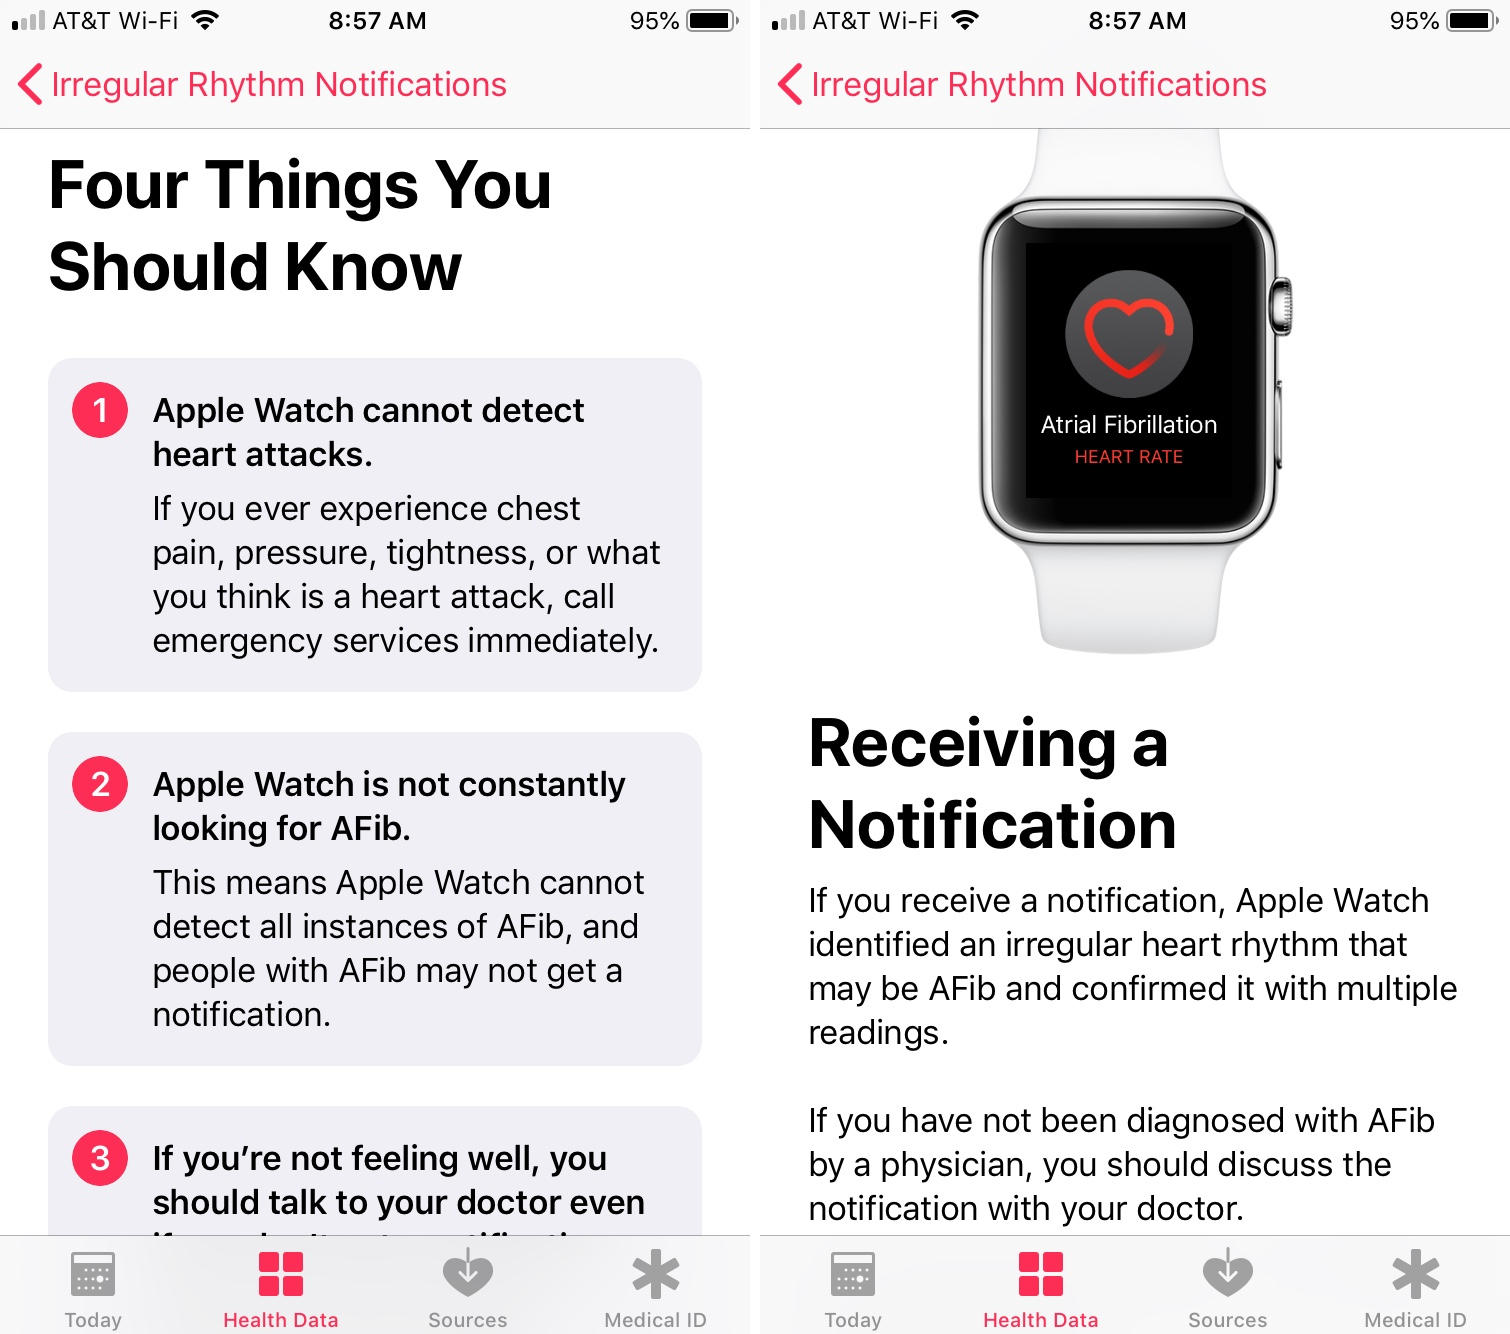 Irregular Rhythm Notification detail screens four things